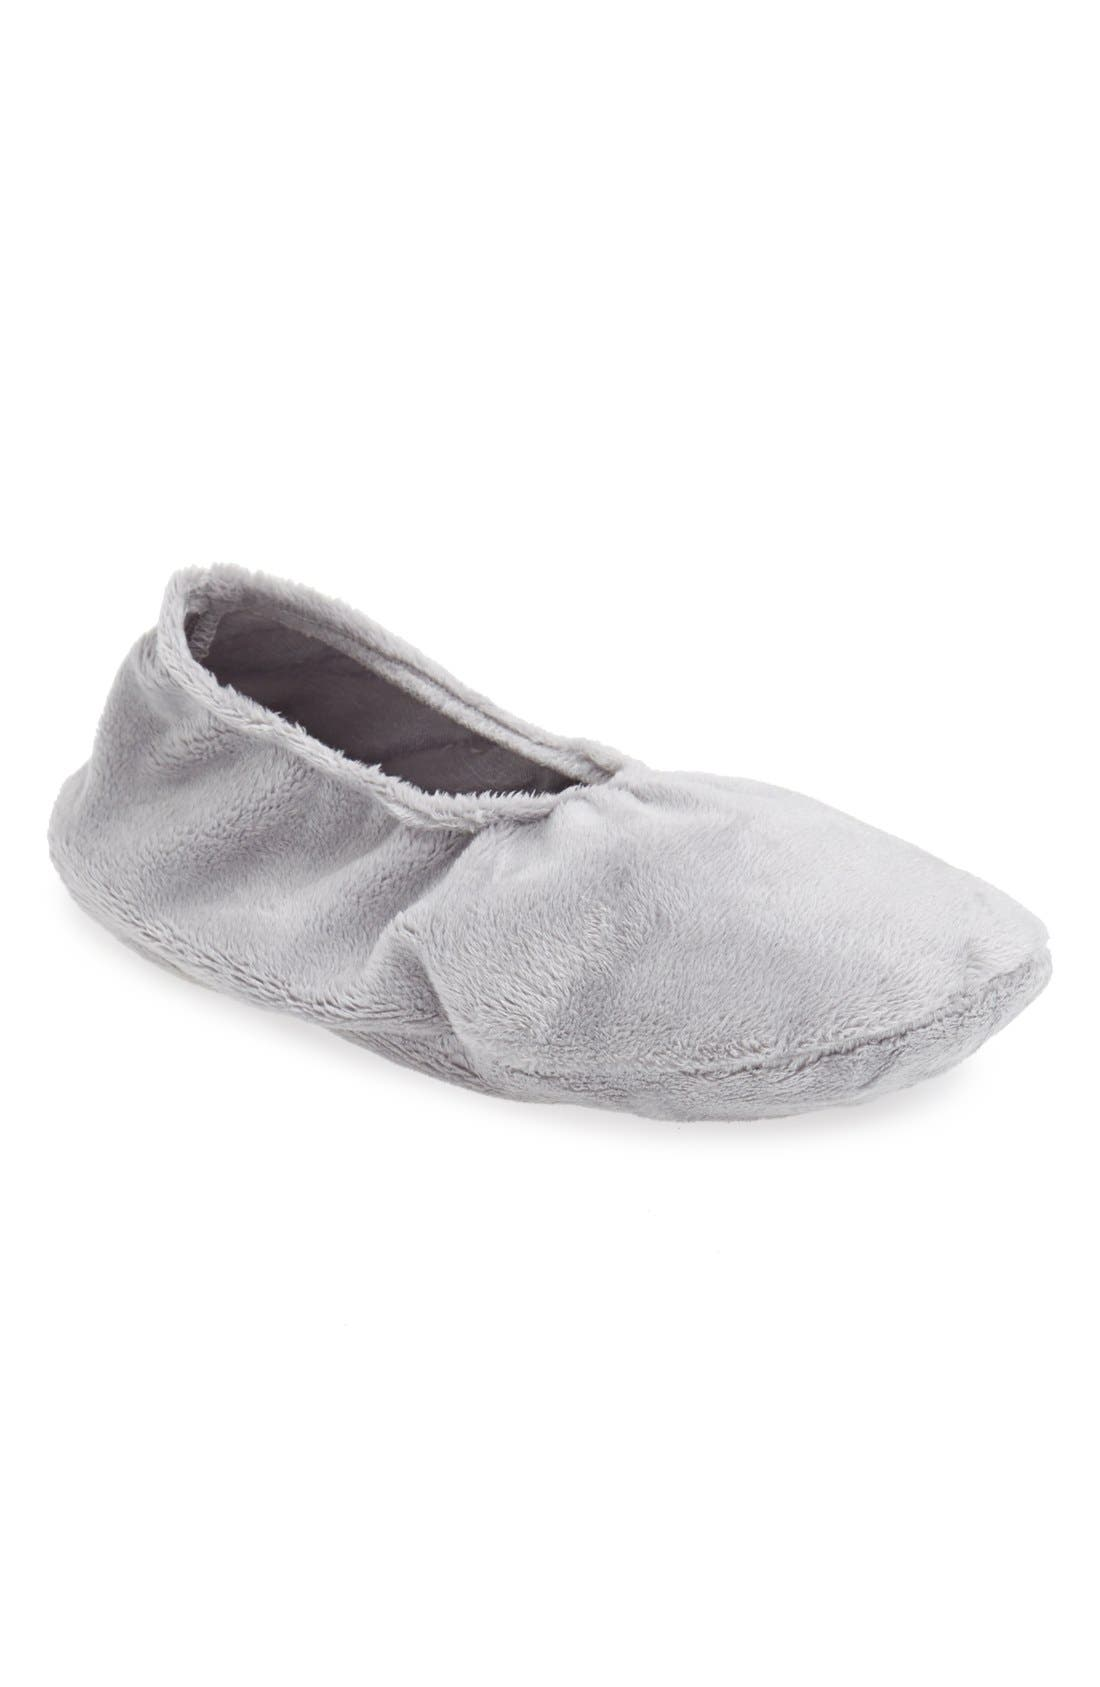 Sonoma Lavender Solid Silver Footies (Nordstrom Exclusive)